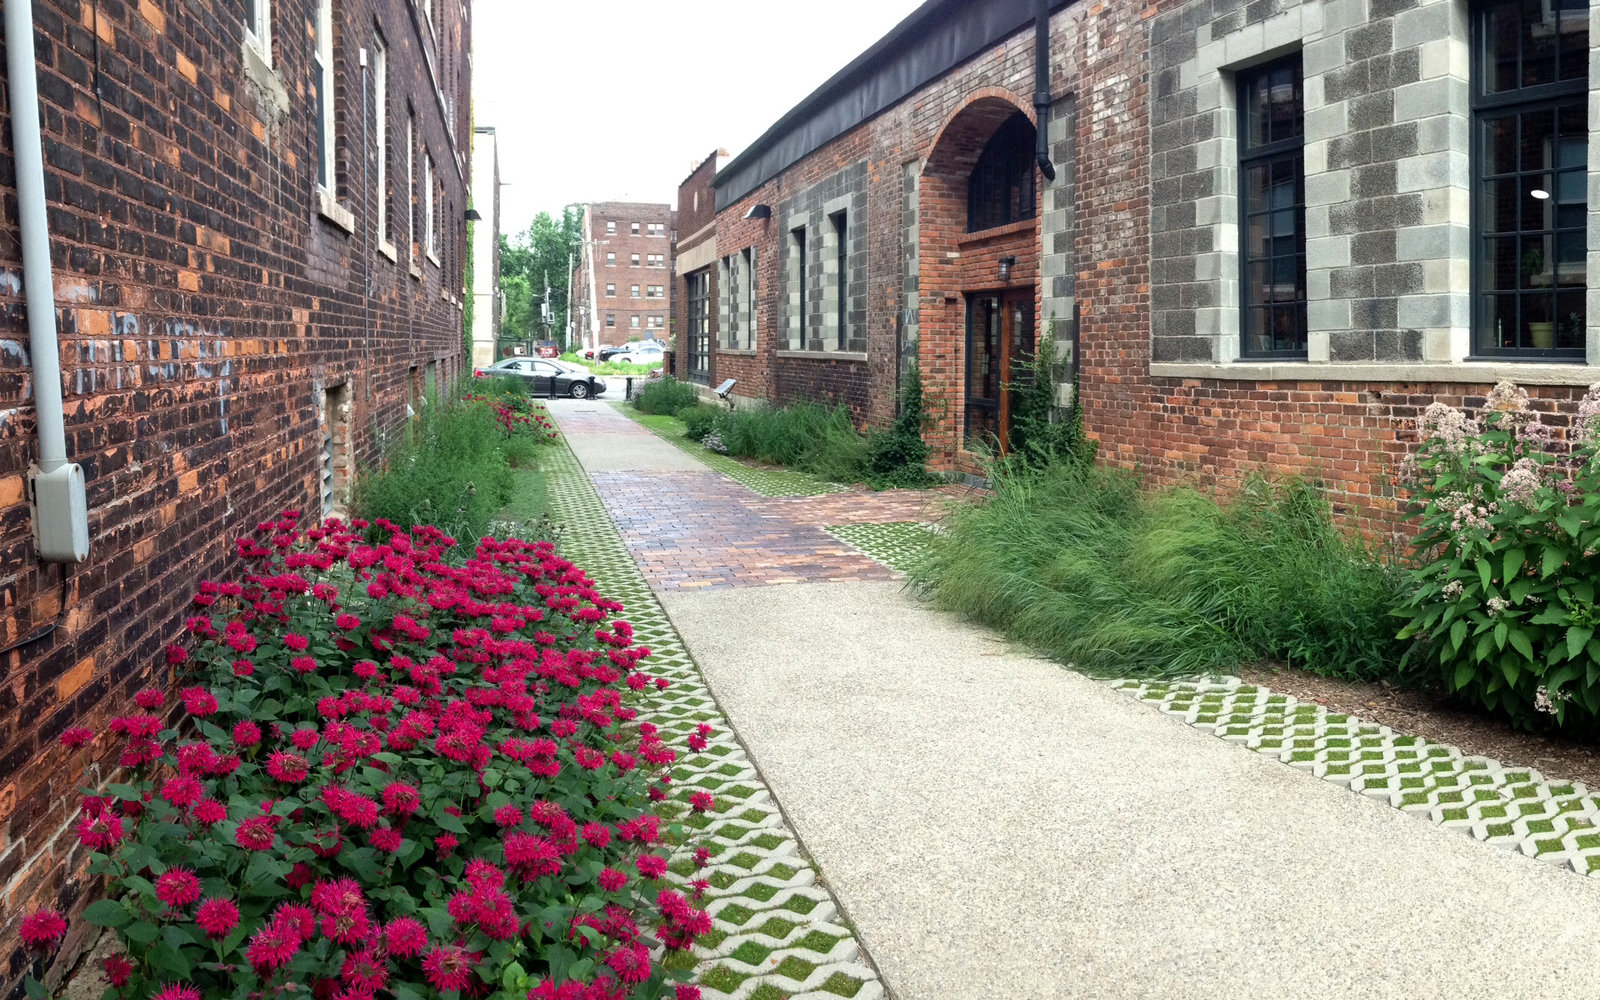 The Detroit Green Alley in Detroit